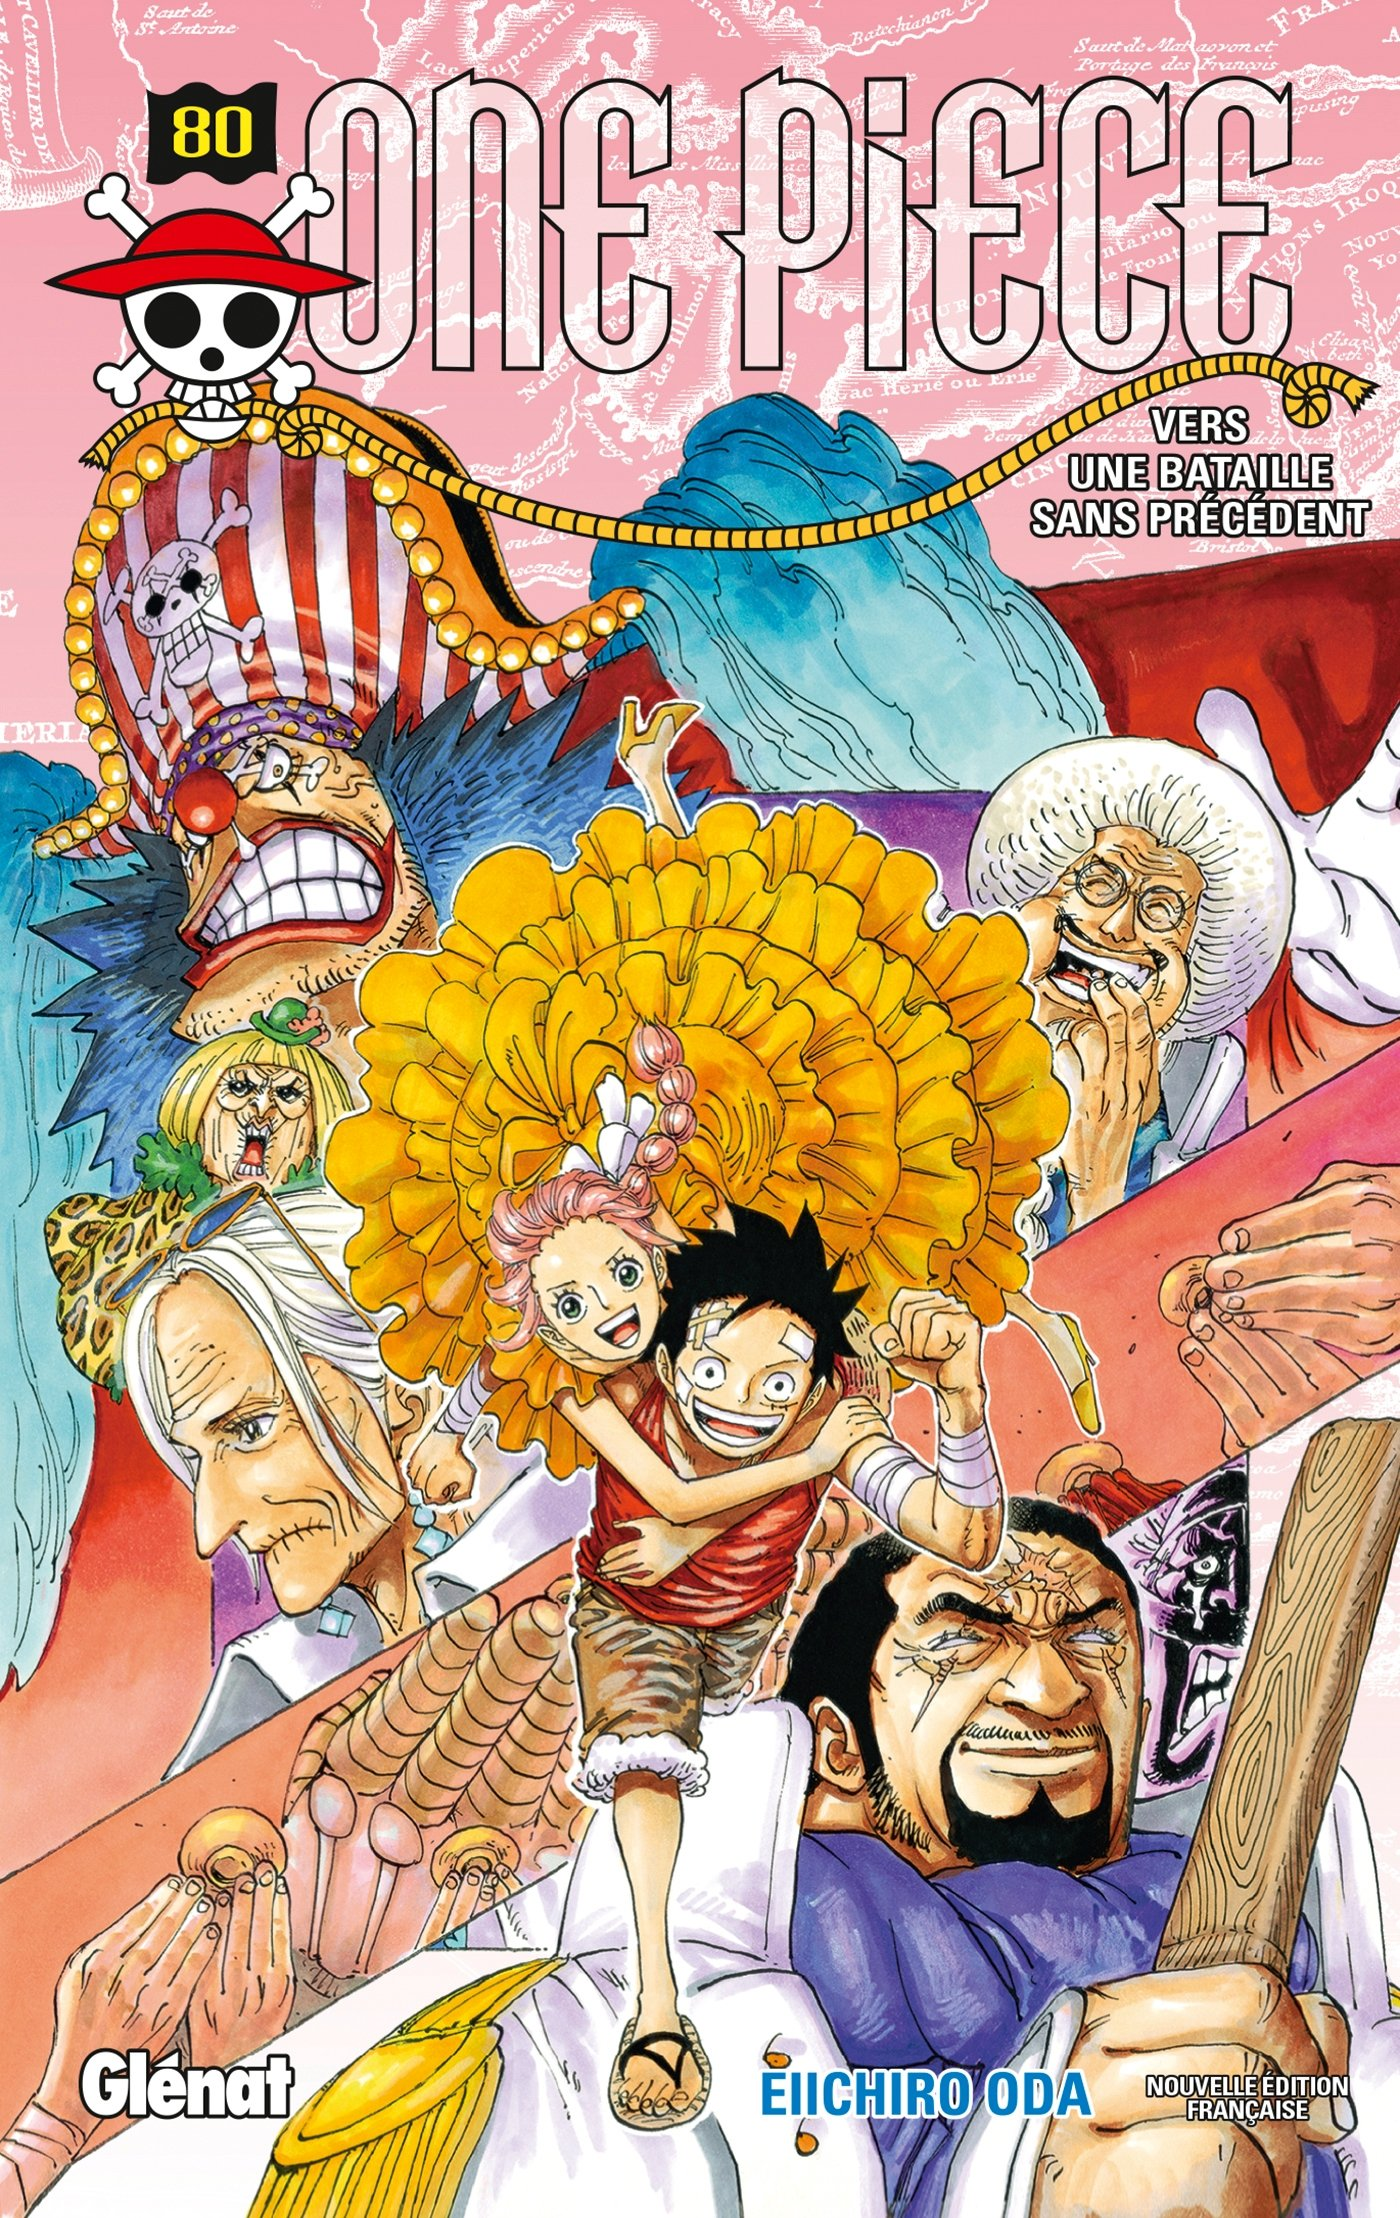 One piece - Edition originale Vol.80 (French Edition) by Glanet - ee